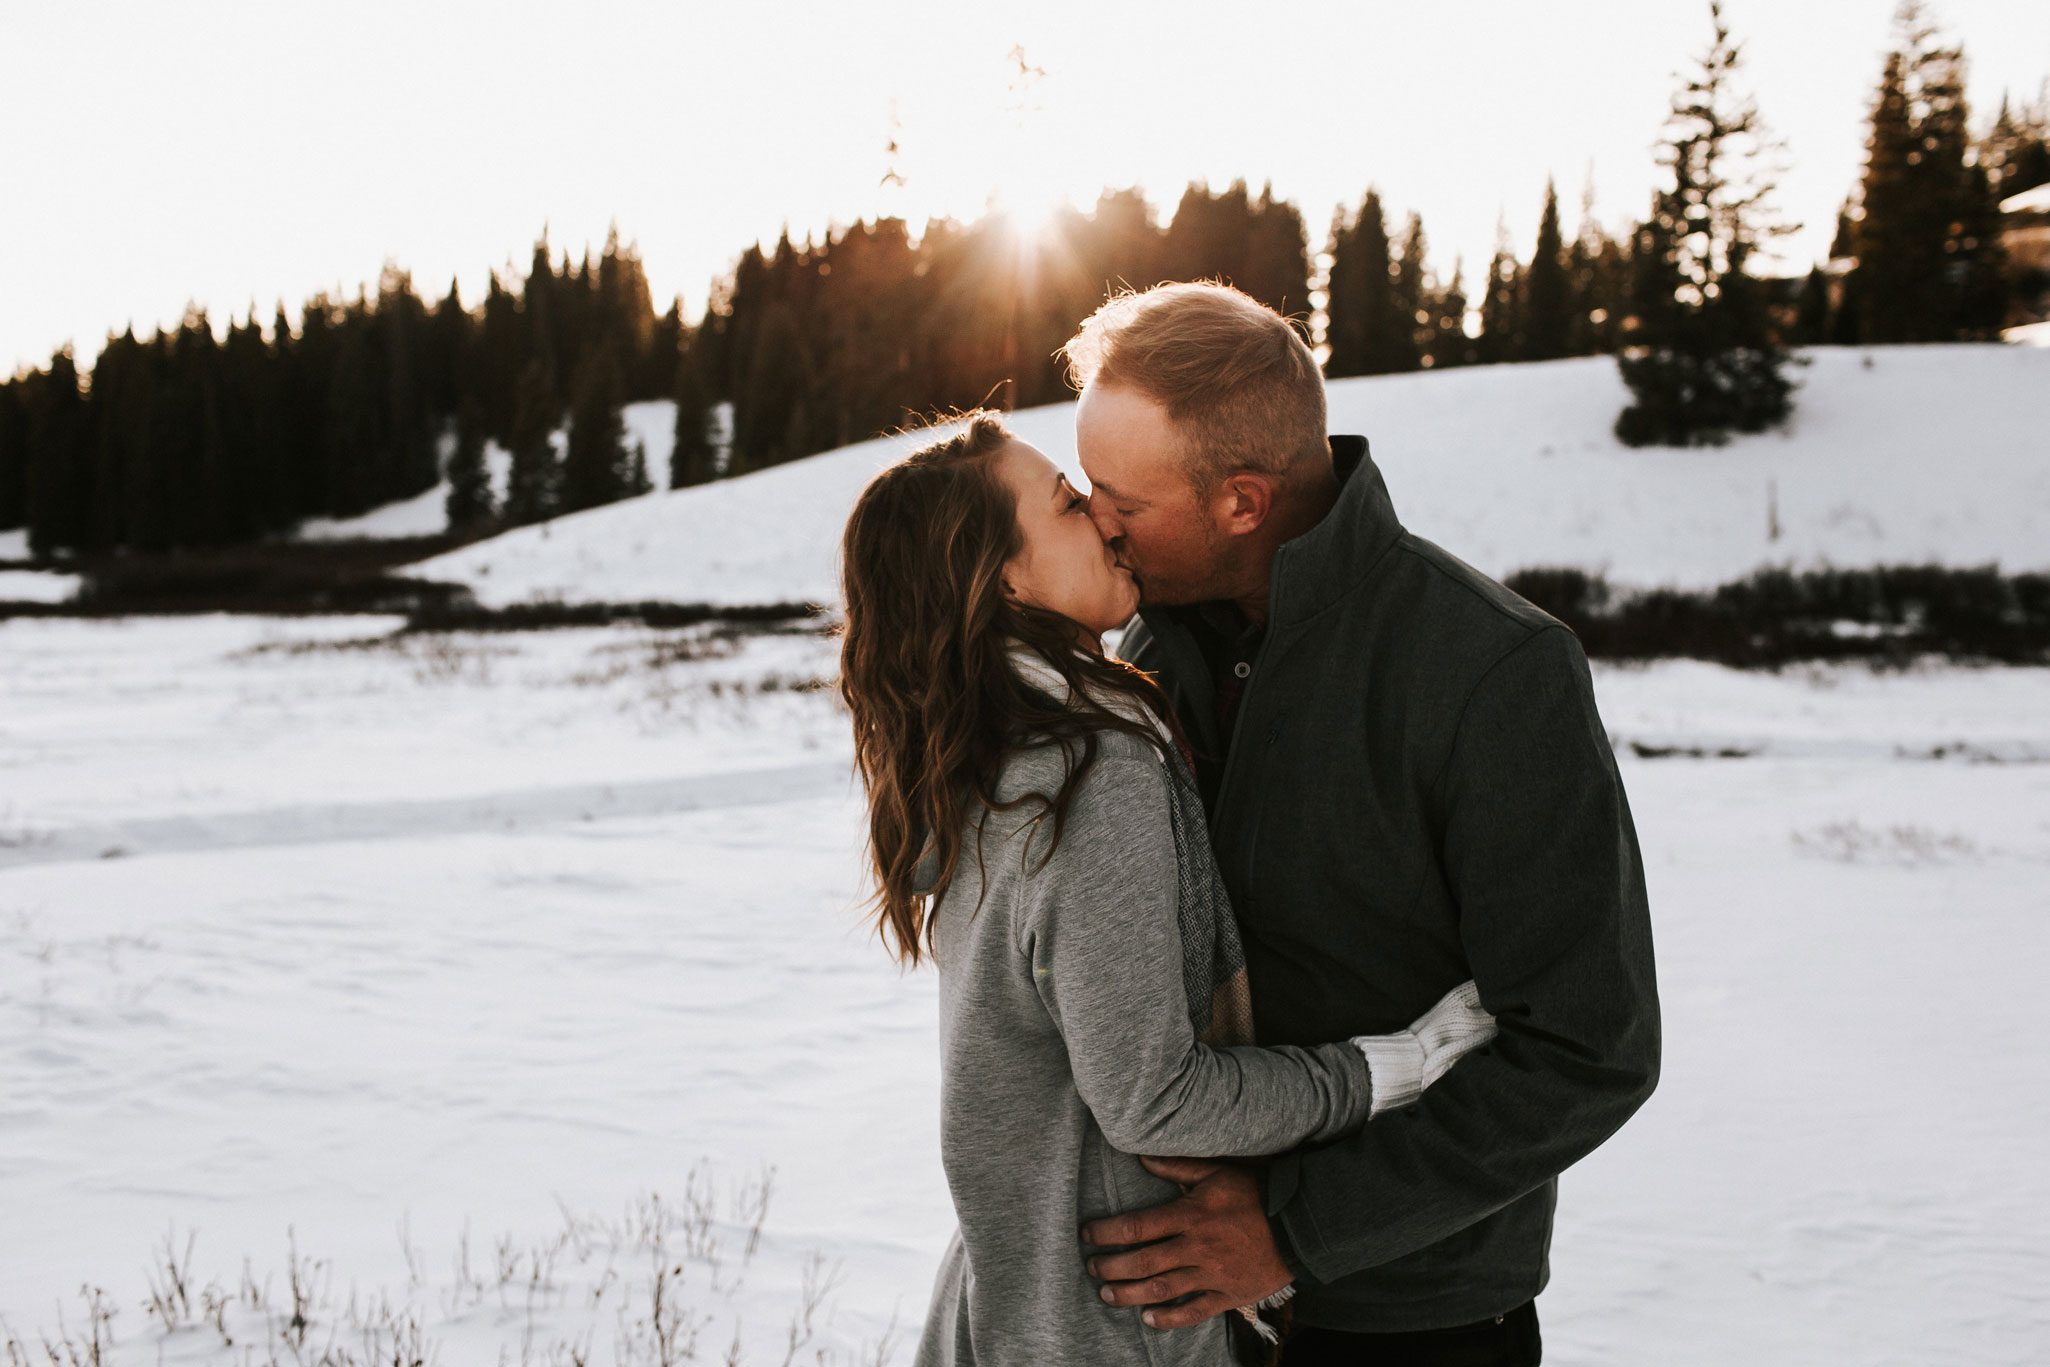 A Durango Engagement Shoot in the Snow by Wegher Photo + Film